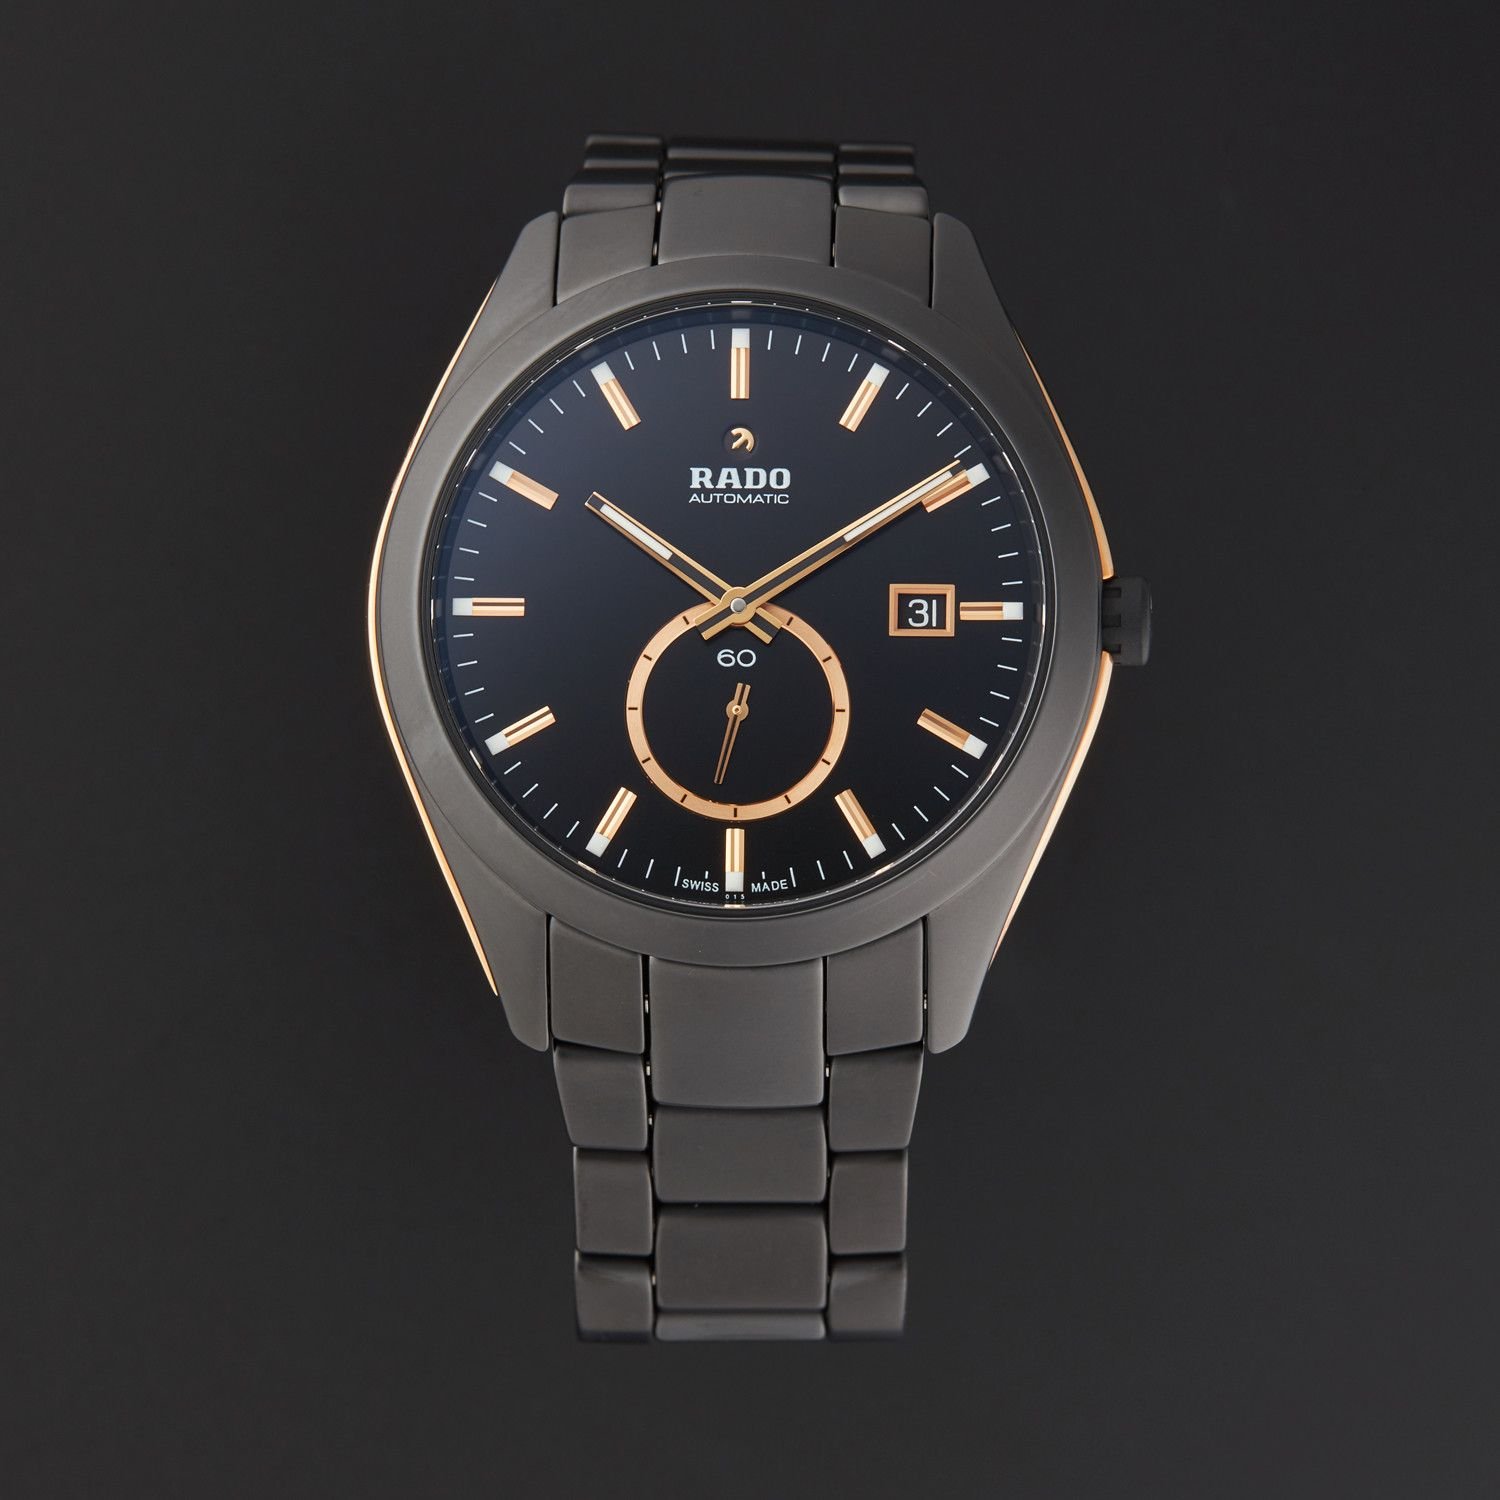 Rado Hyperchrome Xl Automatic R32023152 Store Display Sale Up To 75 Off Shot At Styli Women S Designer Wallets Luxury Jewelry Display Handbags For Men